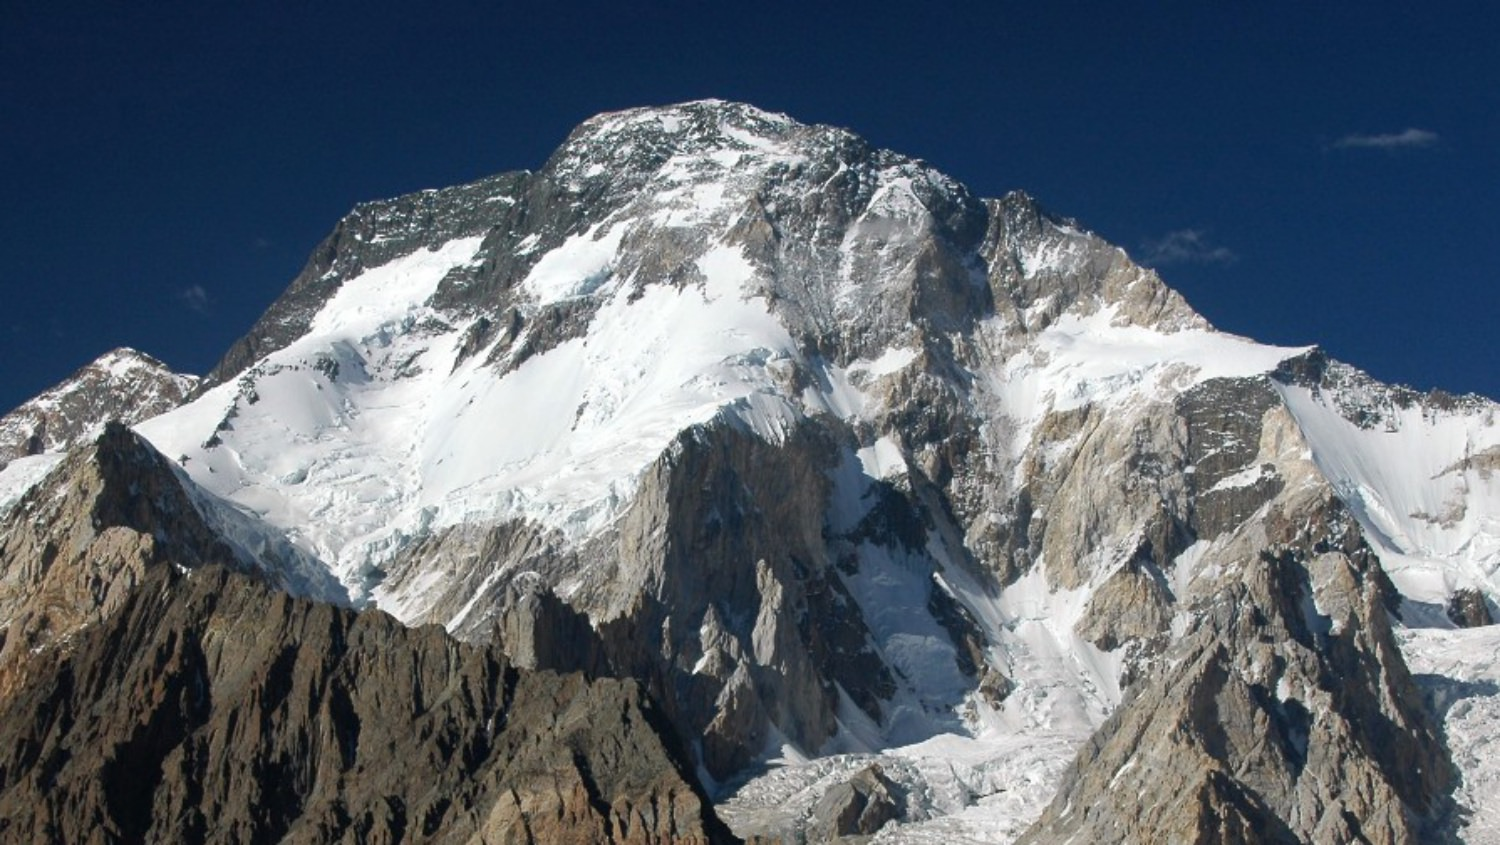 Mountaineer Rick Allen was feared dead on Broad Peak, but a drone found him alive